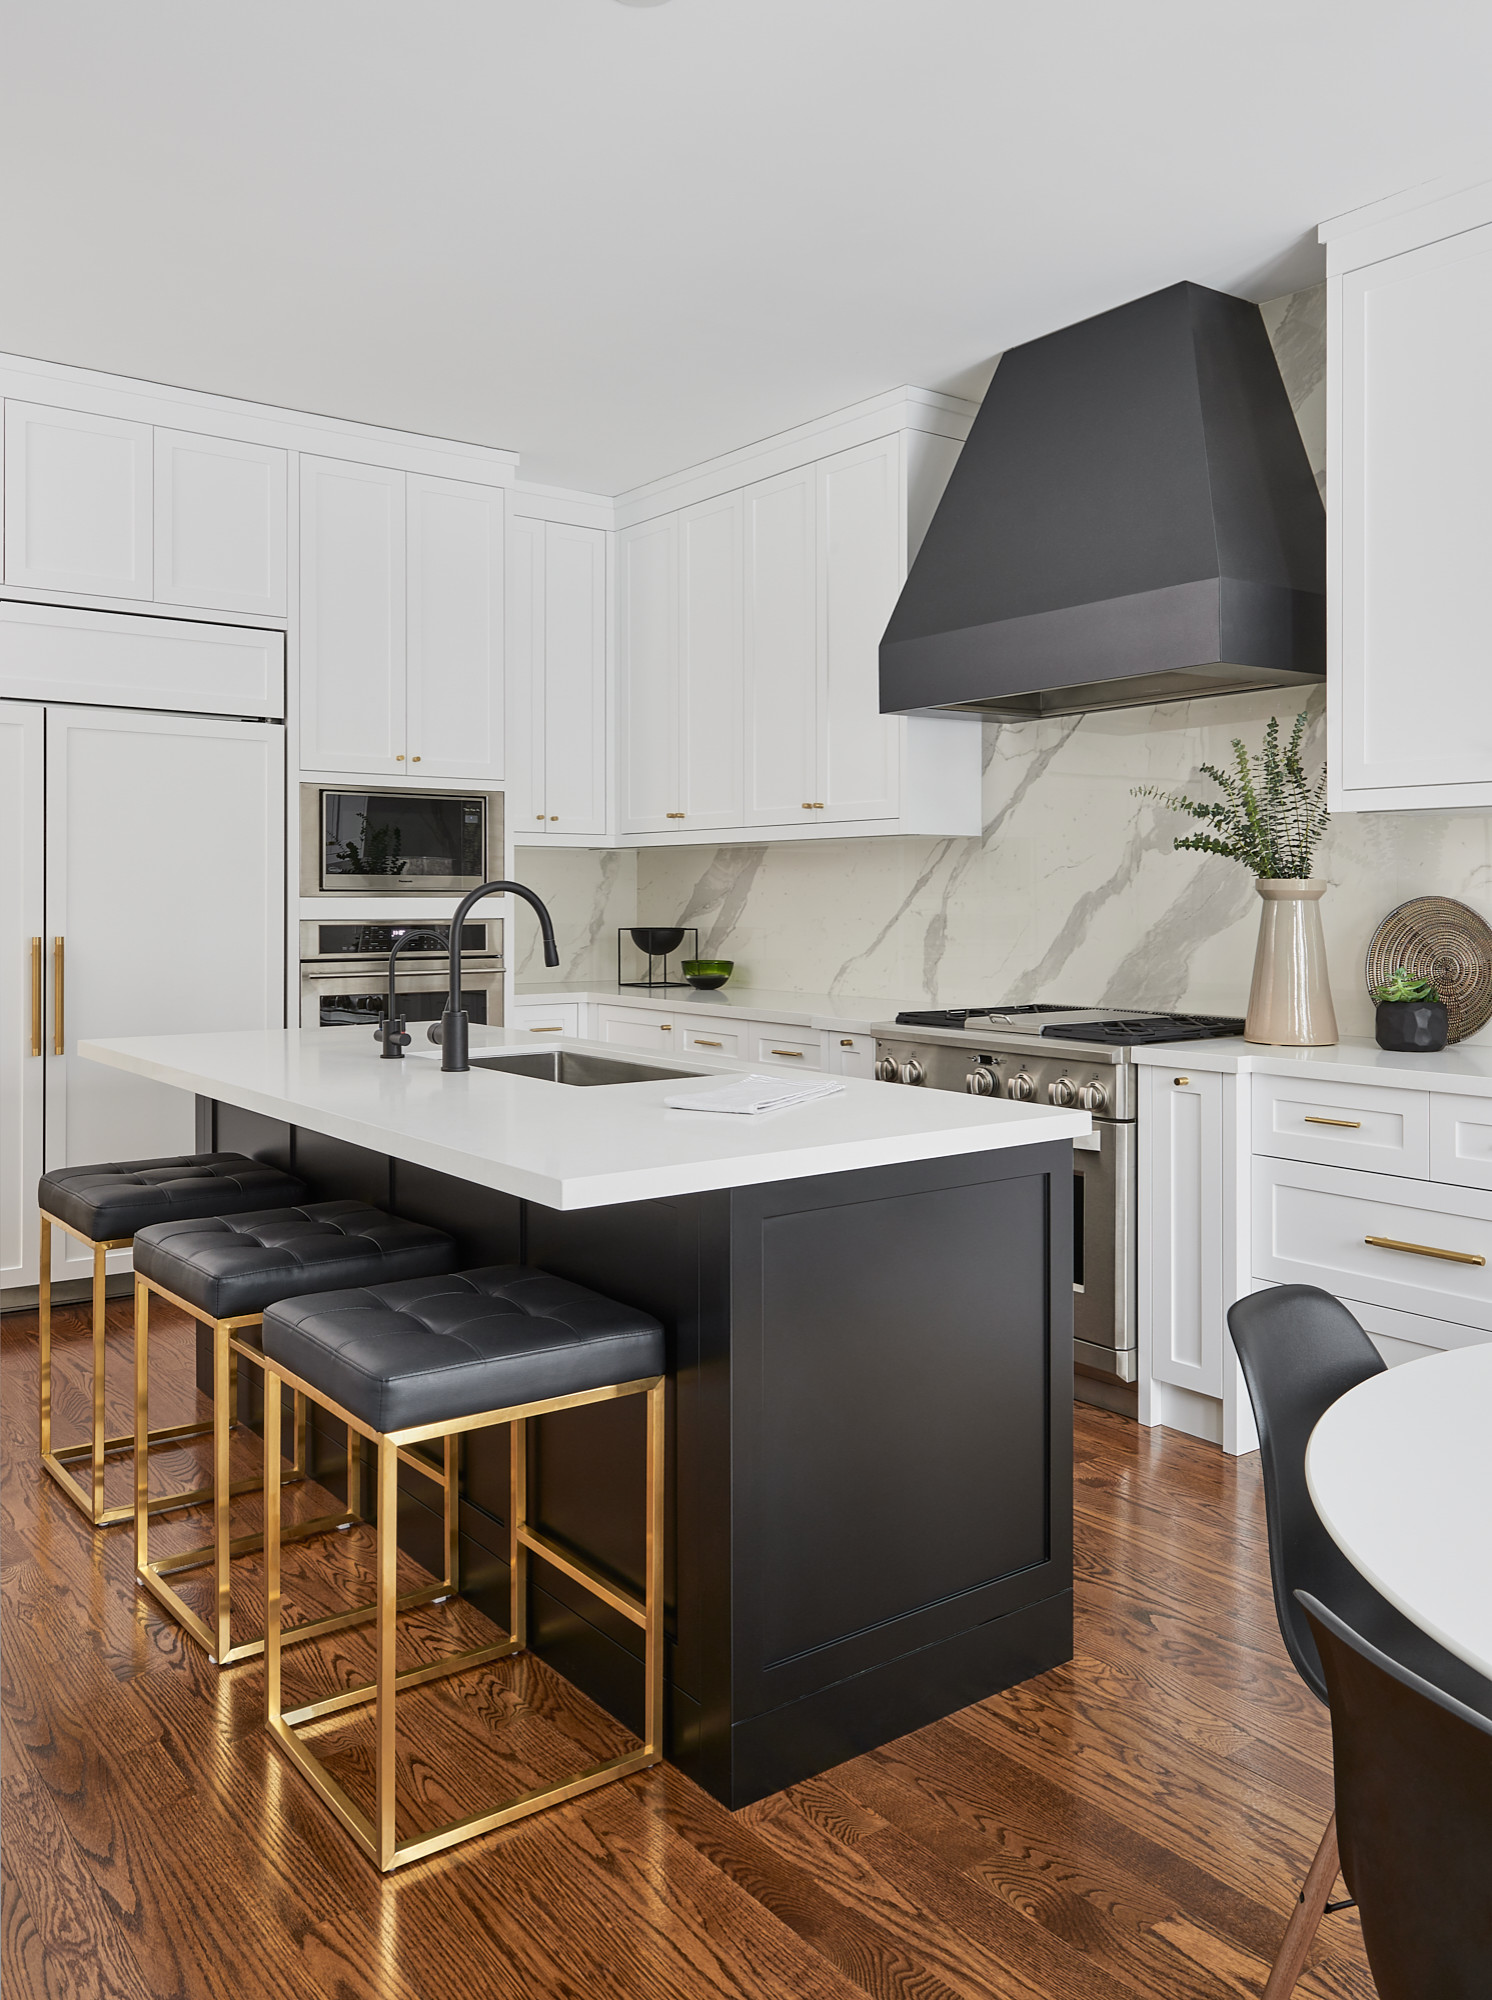 75 Beautiful Black And White Kitchen Pictures Ideas April 2021 Houzz